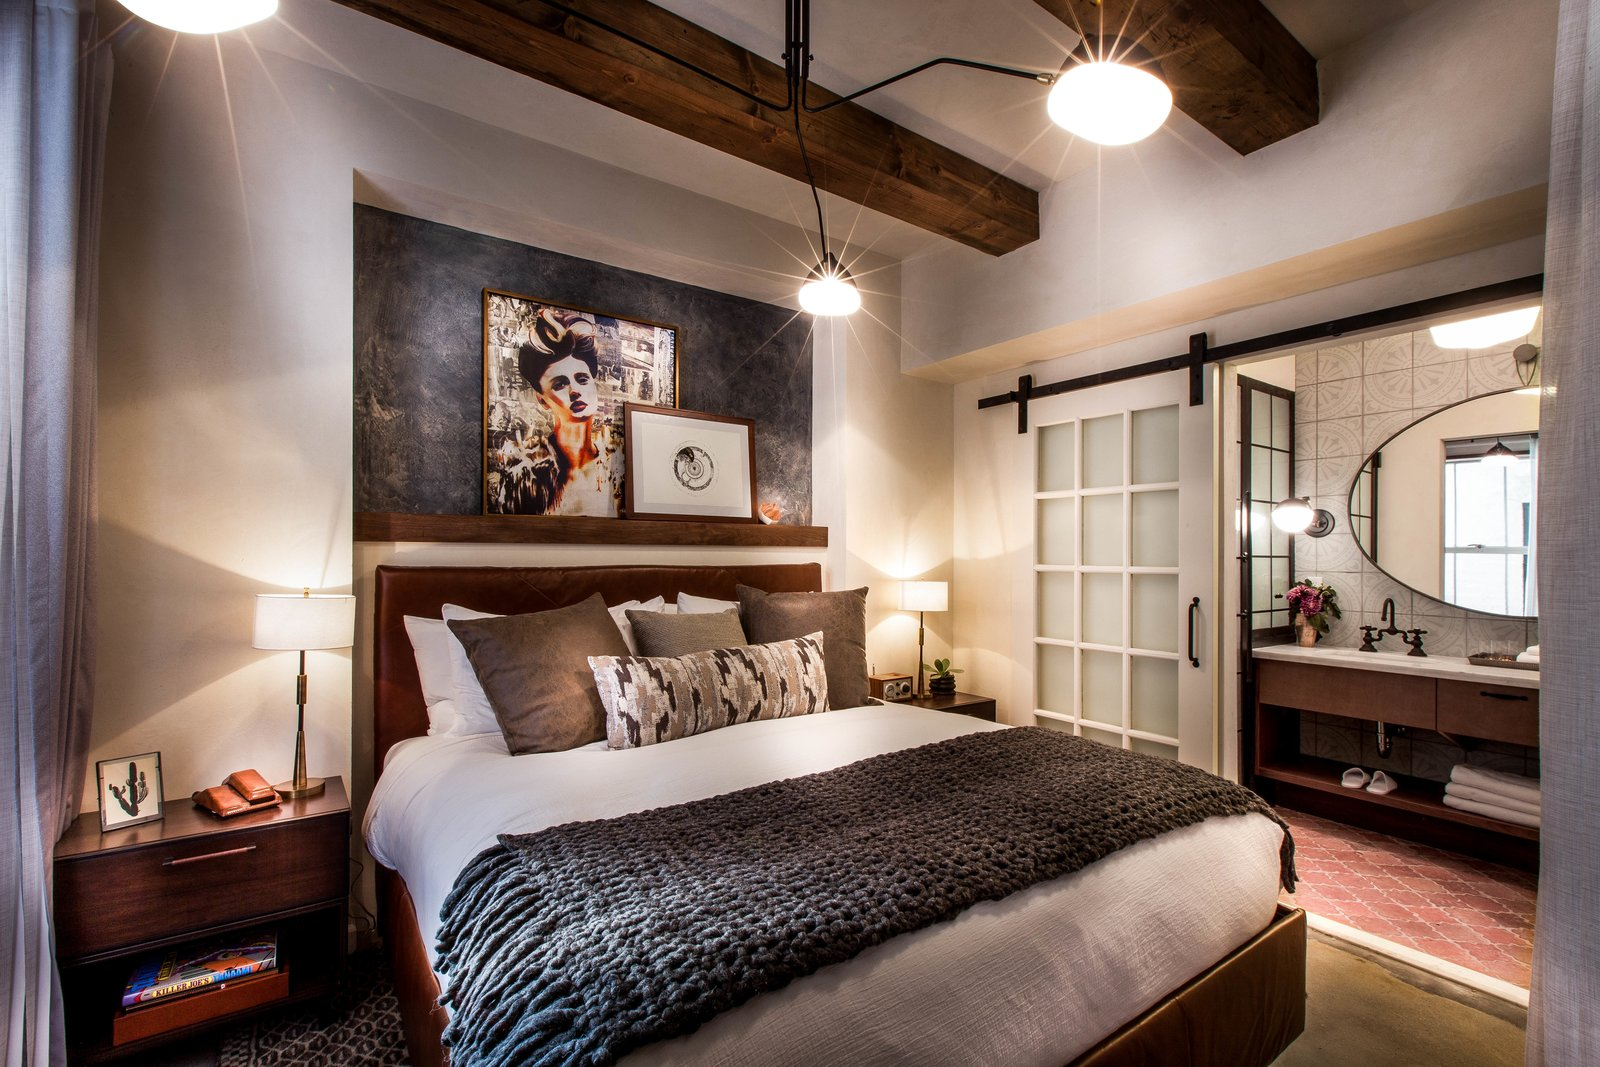 50 Bright Ideas For Bedroom Ceiling Lighting